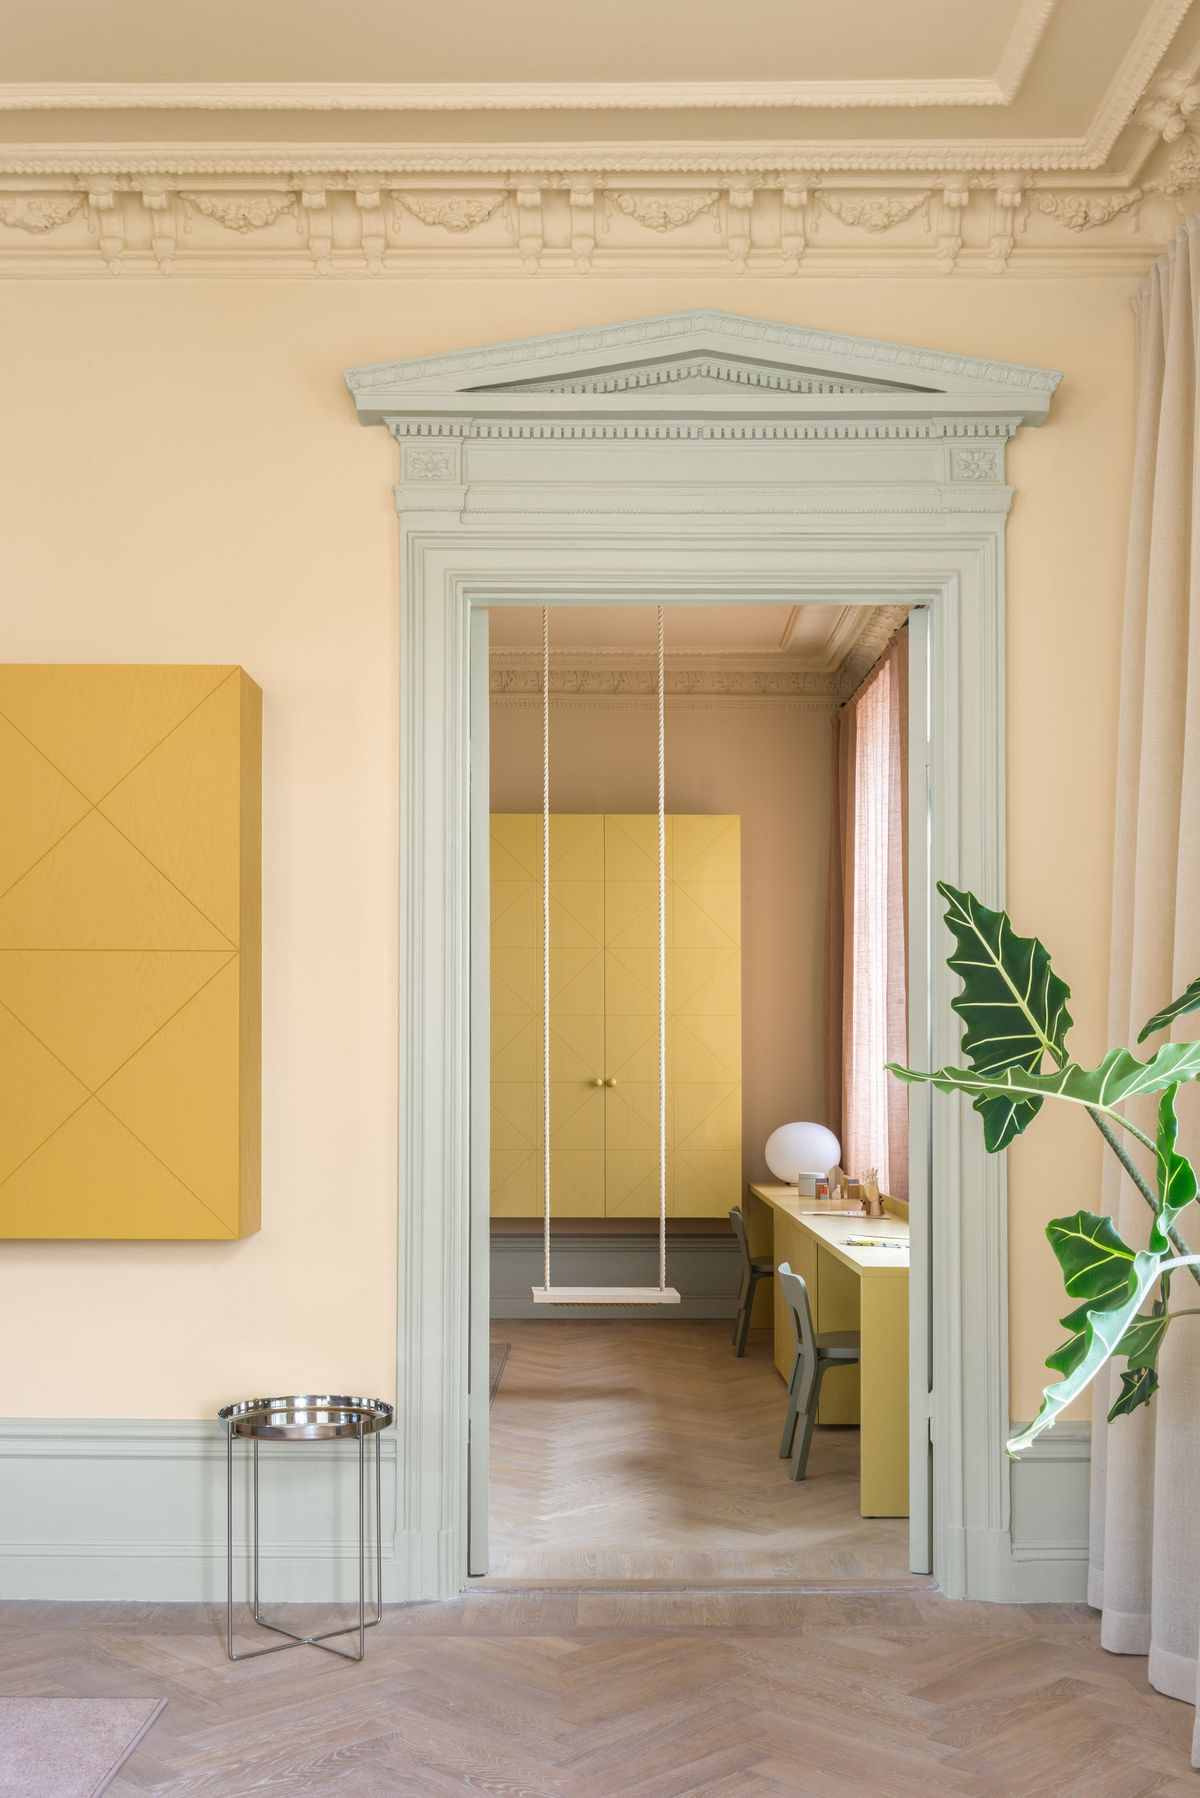 Dreamy Revamp Of 19th Century Stockholm Home Can Be Yours For 2 8m